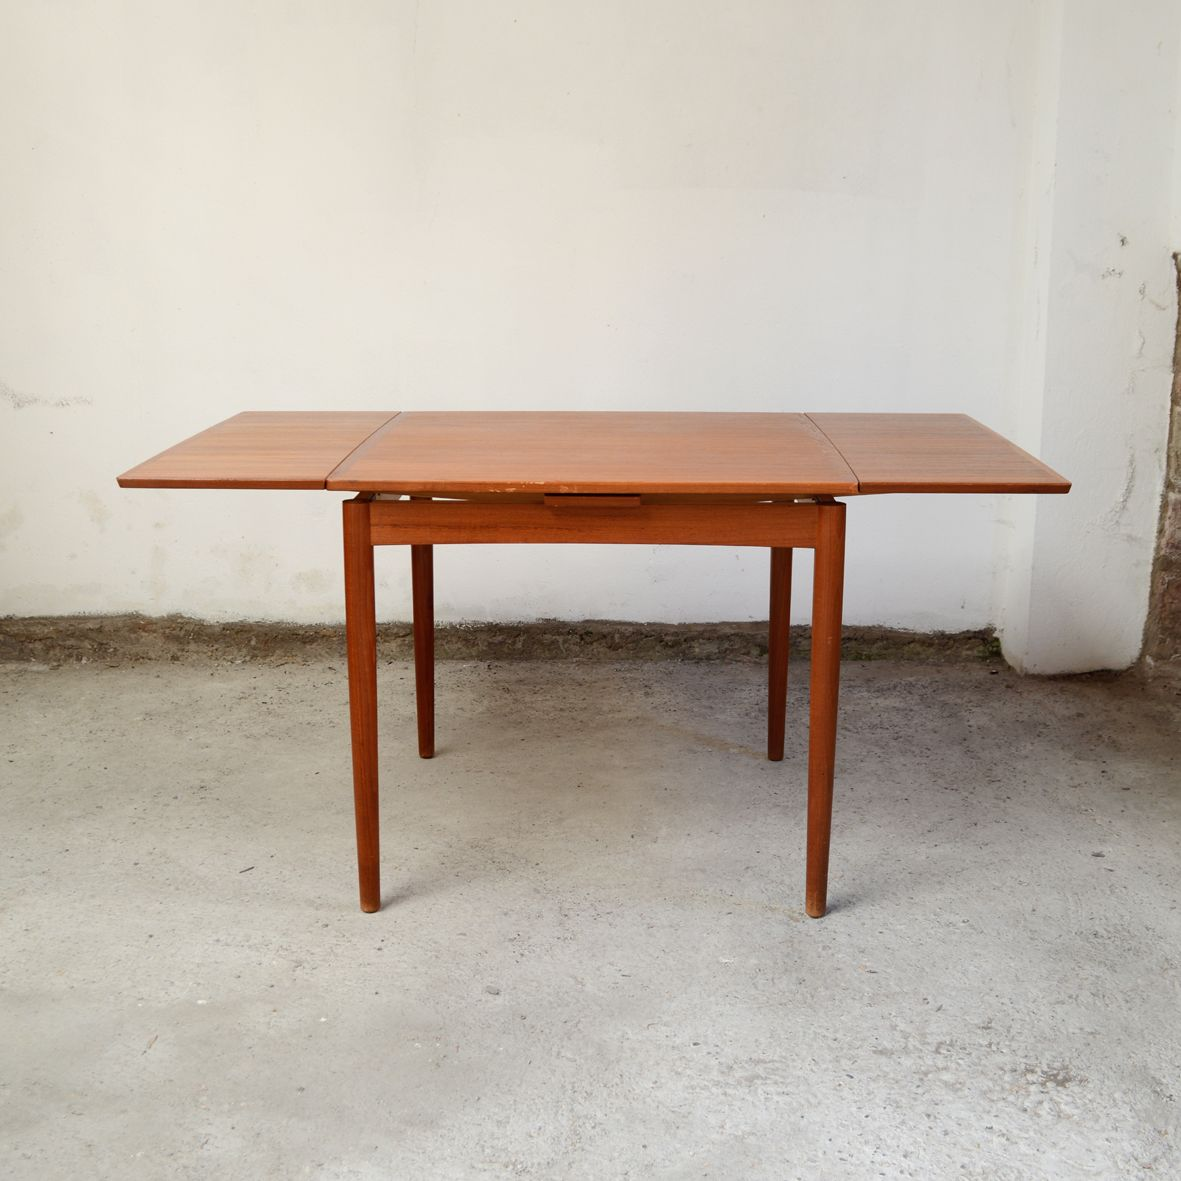 Mid Century Teak Square Dining Room Table by Poul Hundevad  : mid century teak square dining room table by poul hundevad for hundevad co 3 from www.pamono.com size 1181 x 1181 jpeg 887kB